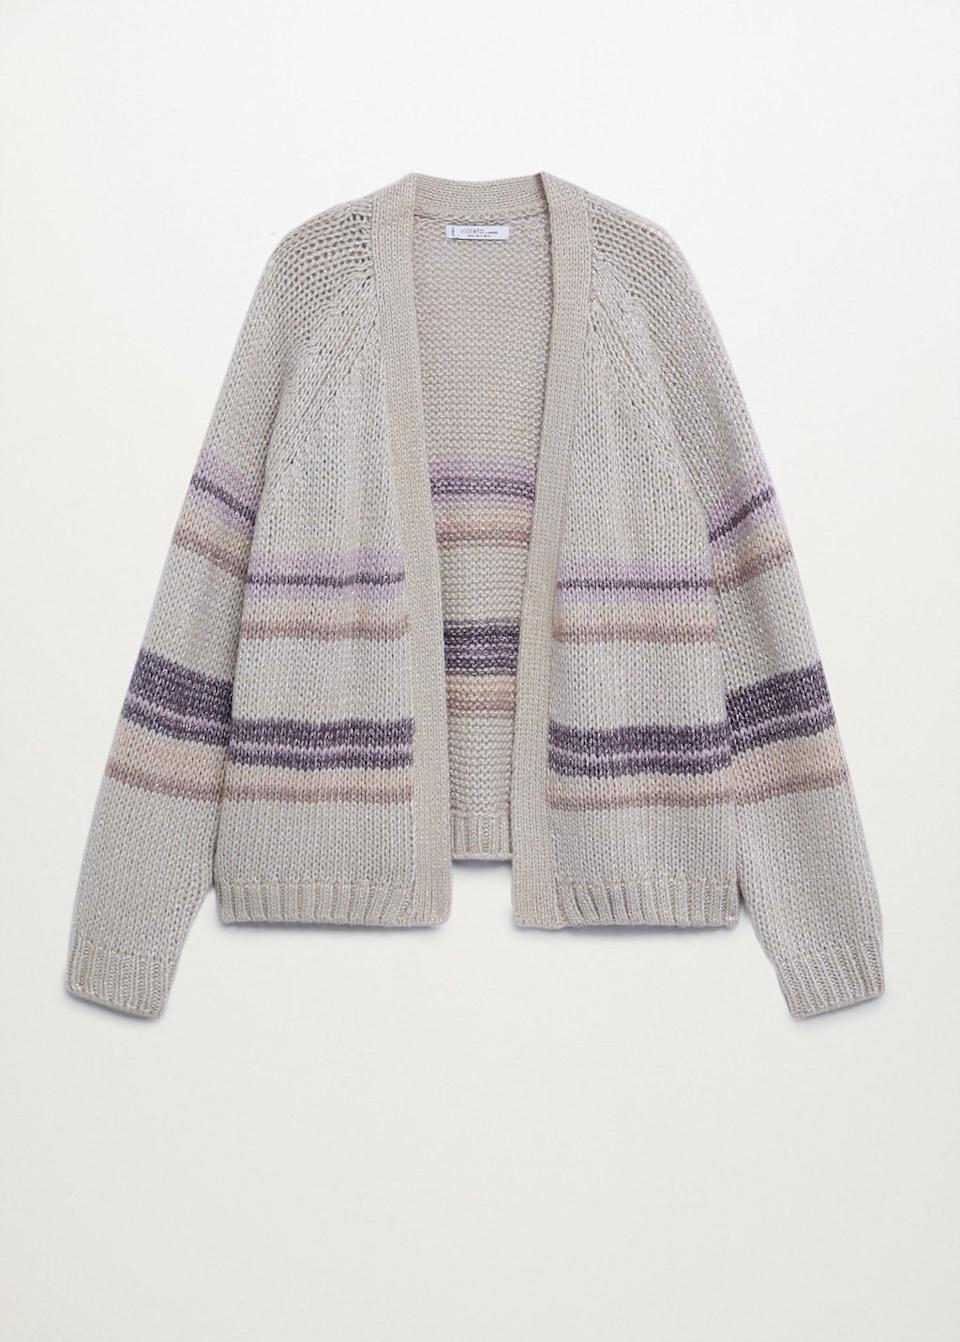 """<br><br><strong>Mango</strong> Metallic Knitted Cardigan, $, available at <a href=""""https://shop.mango.com/gb/plus-size/sweaters-and-cardigans/metallic-knitted-cardigan_77027607.html"""" rel=""""nofollow noopener"""" target=""""_blank"""" data-ylk=""""slk:Mango"""" class=""""link rapid-noclick-resp"""">Mango</a>"""